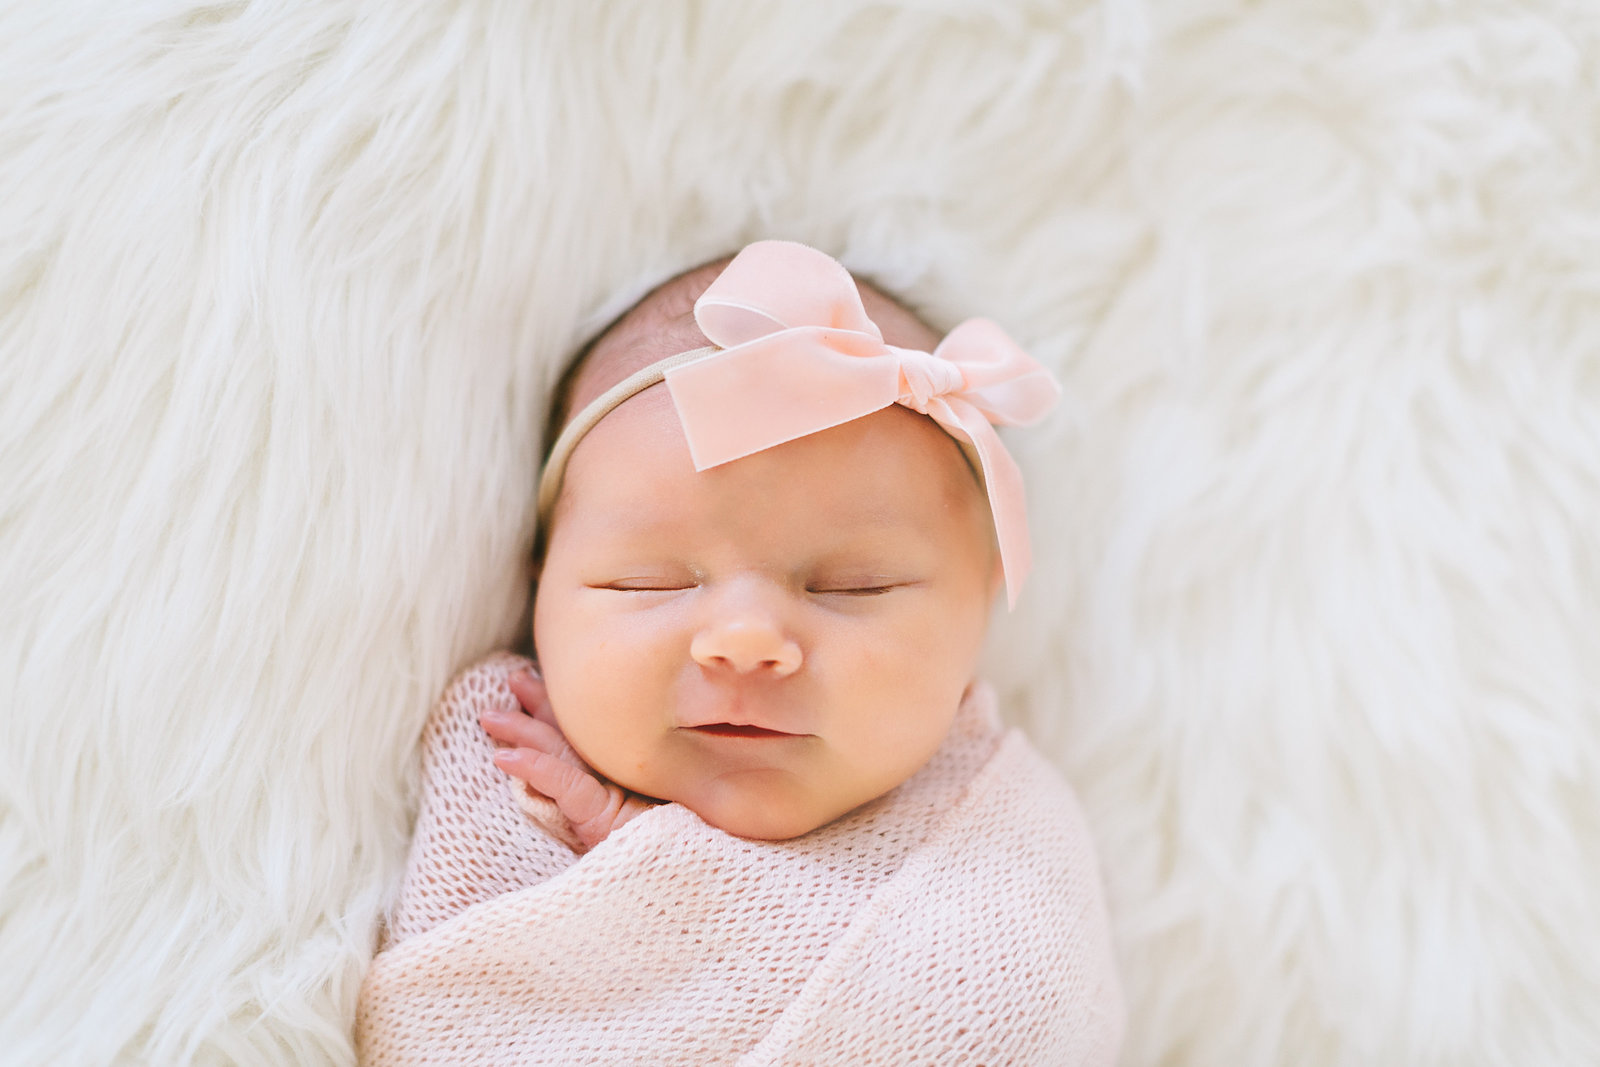 San-Juan-Capistrano-Beach-Newborn-Lifestyle-Photos_27